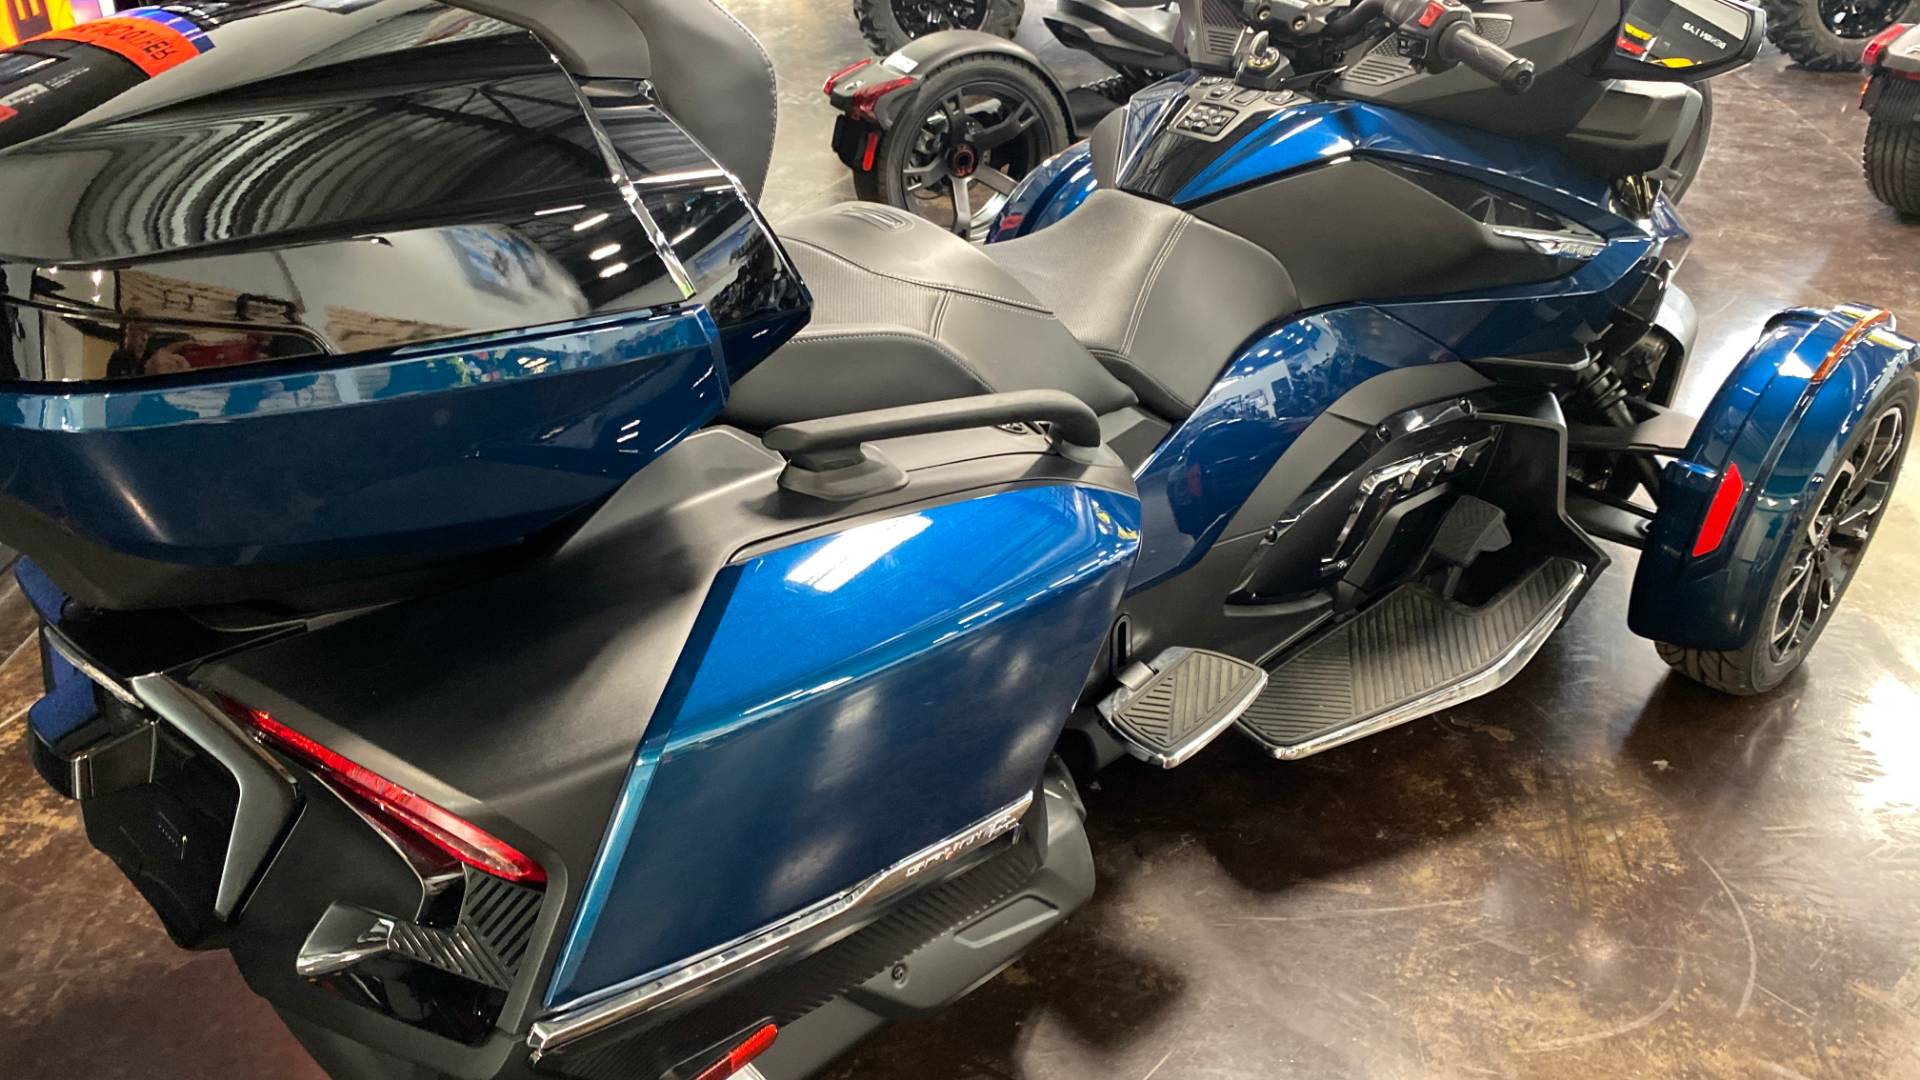 2020 Can-Am Spyder RT Limited in Portland, Oregon - Photo 8